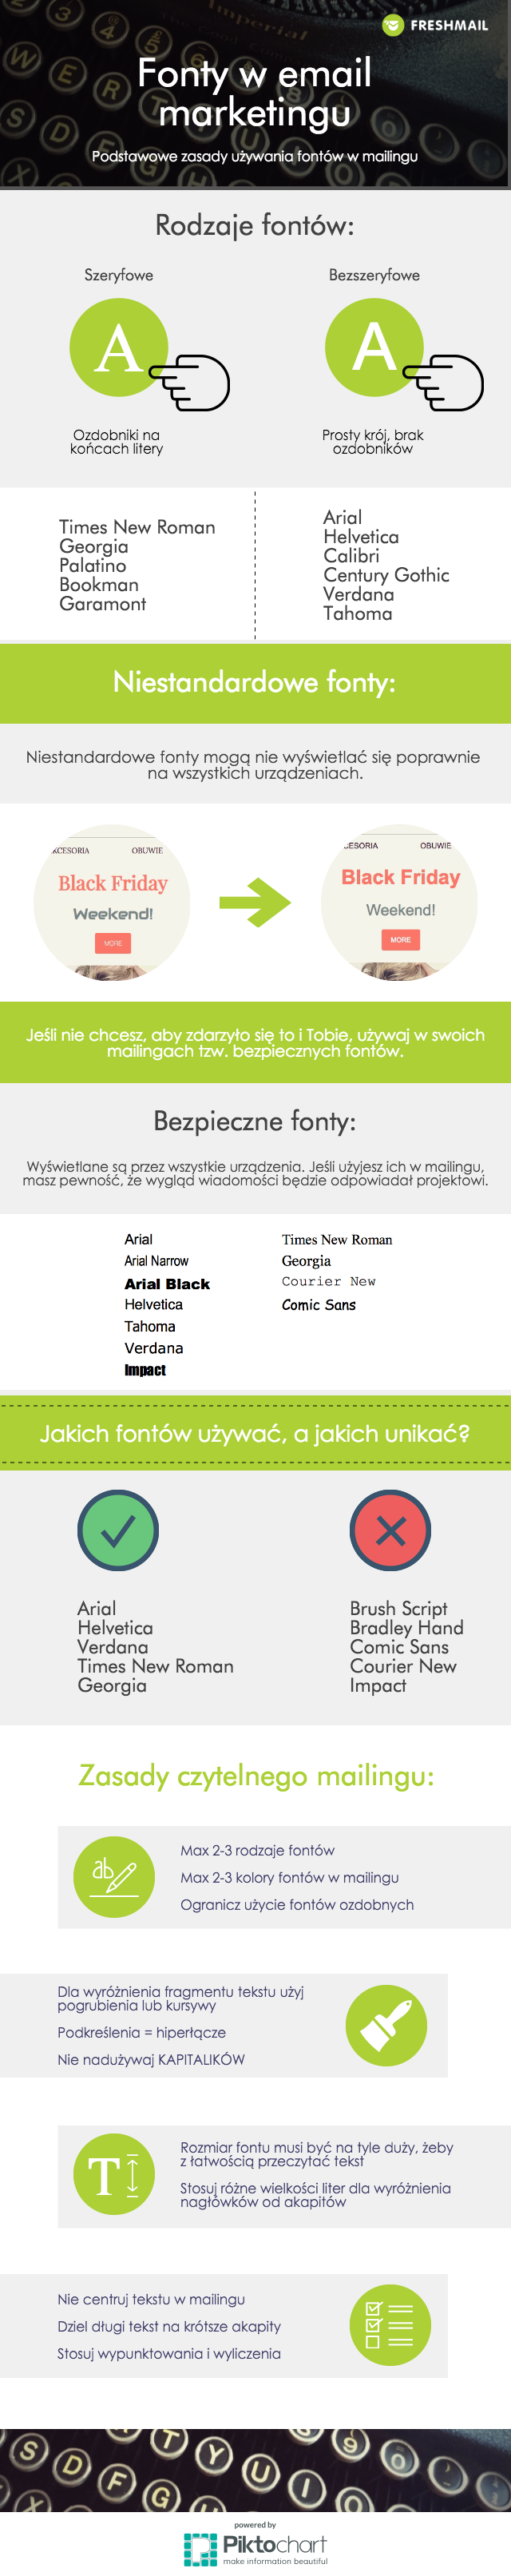 fonty w email marketingu